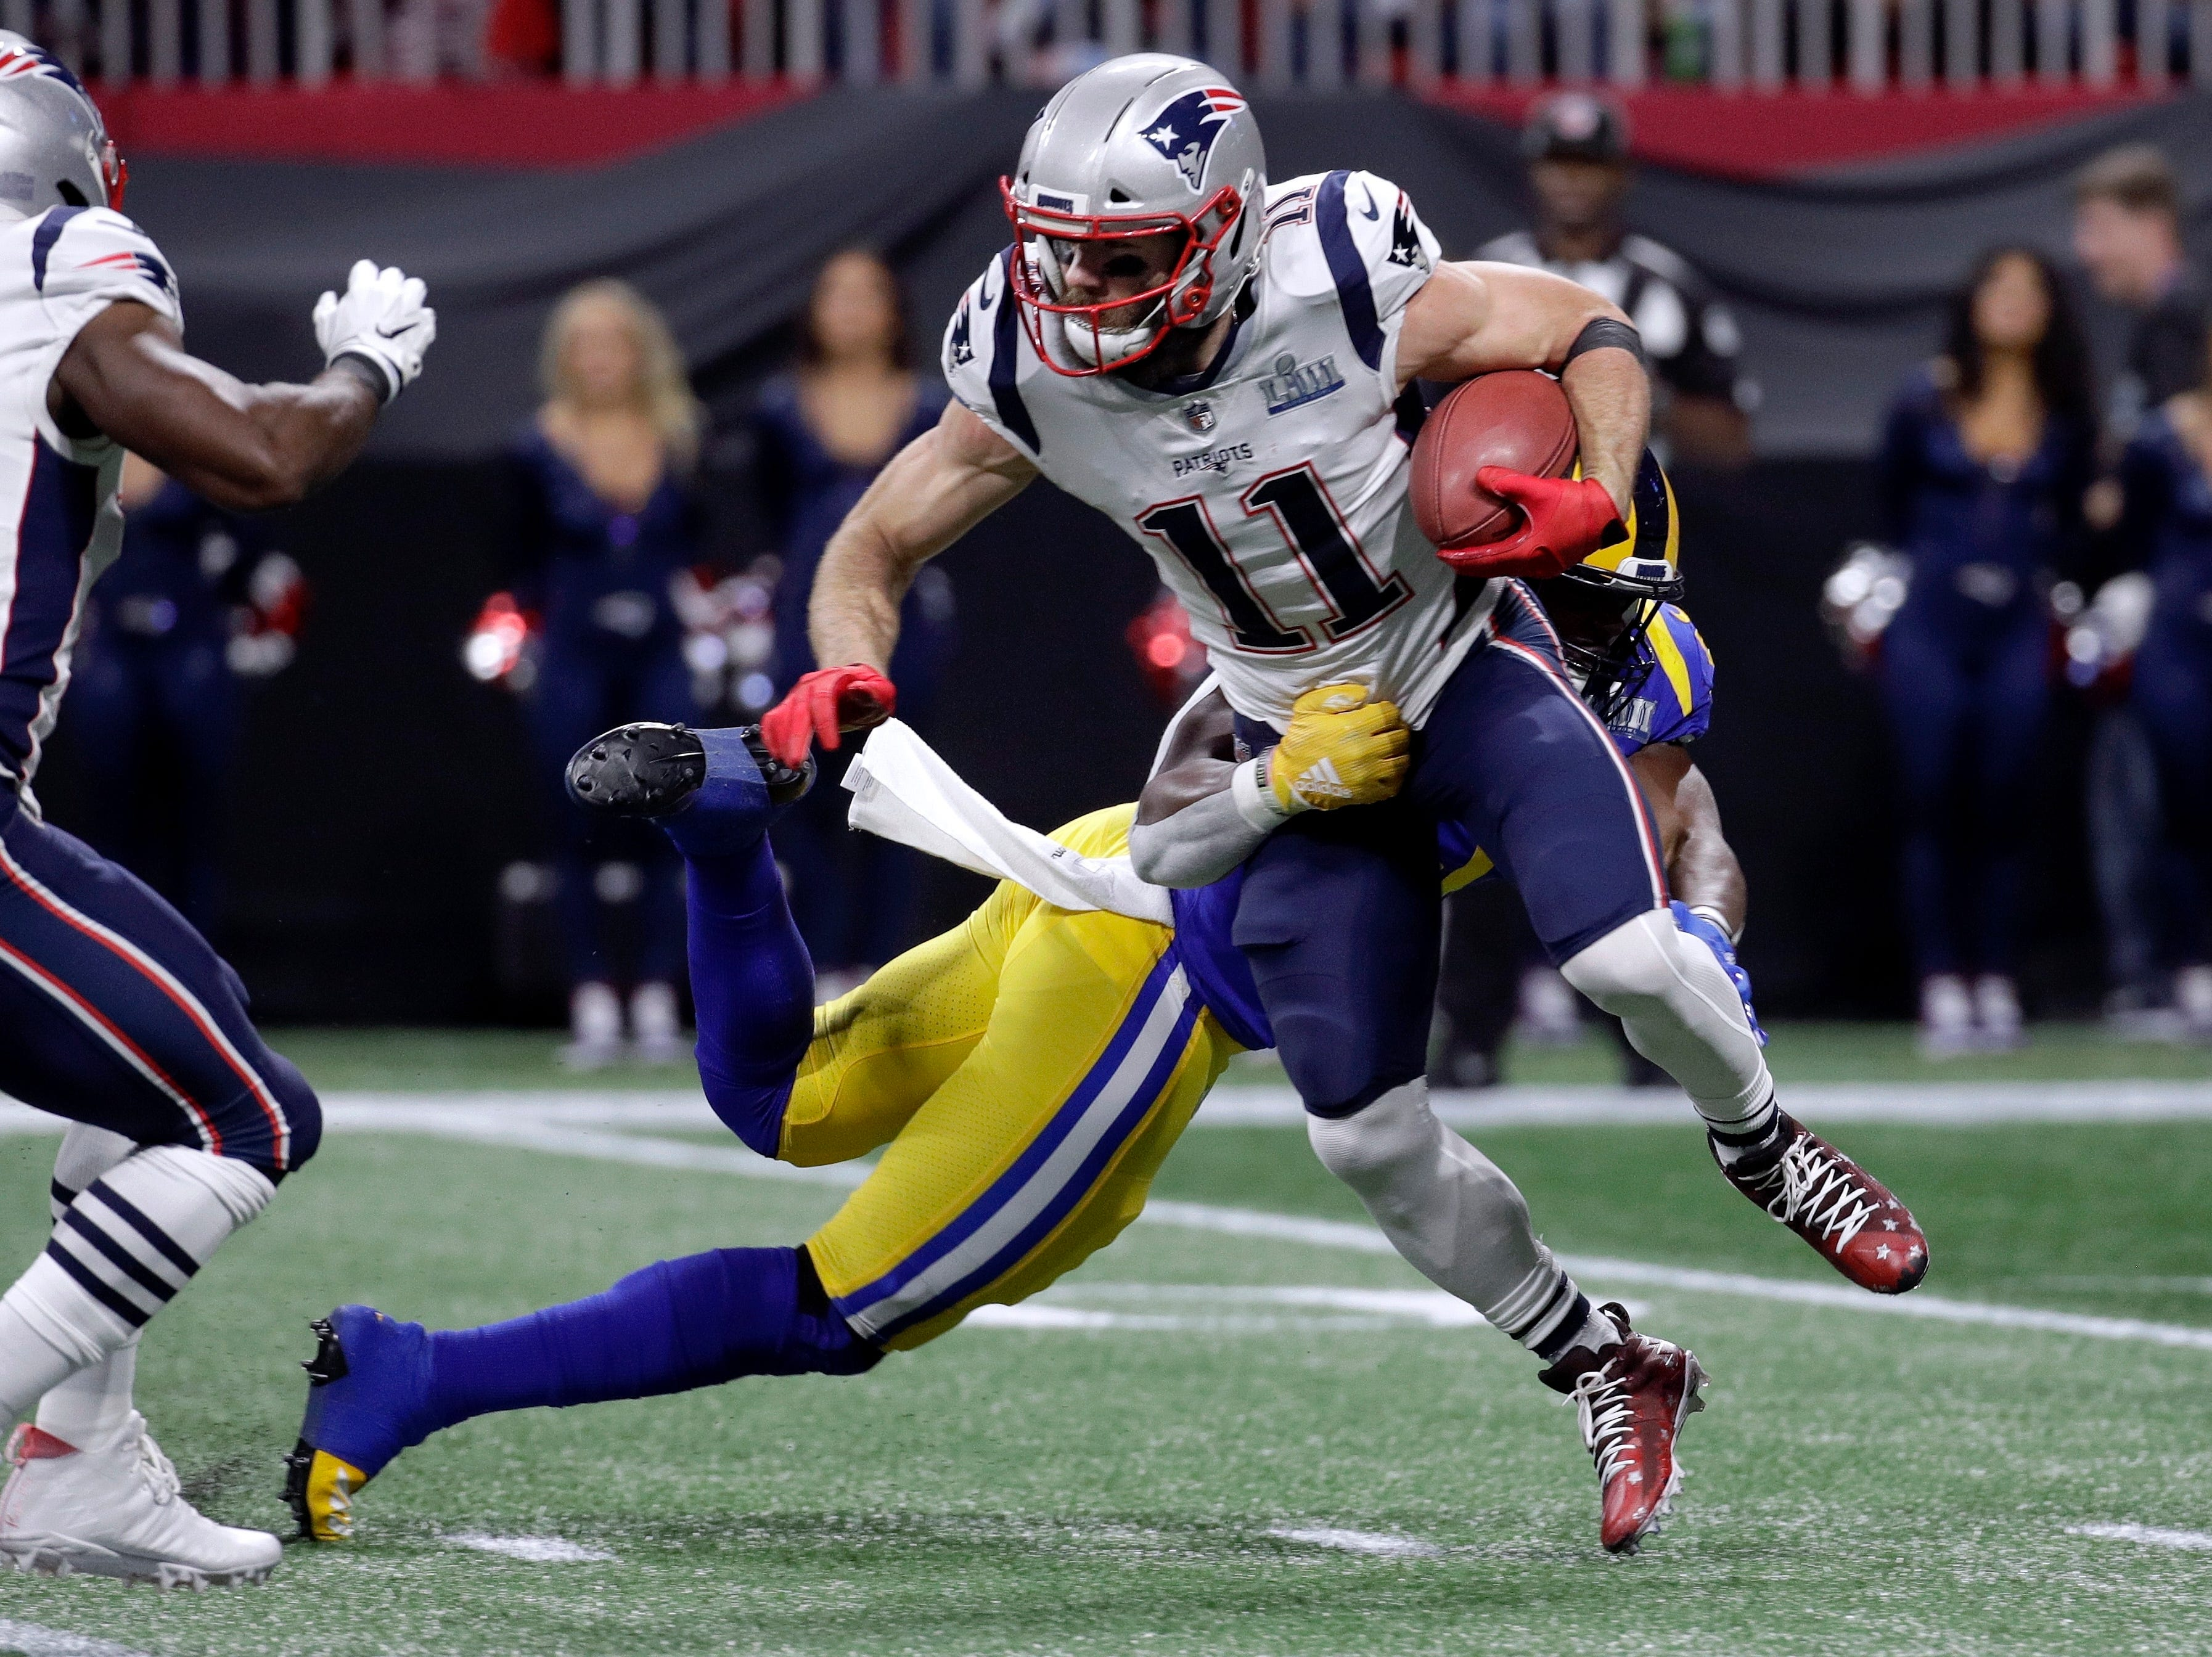 New England Patriots' Julian Edelman (11) is tackled by Los Angeles Rams' Samson Ebukam, rear, during the first half.